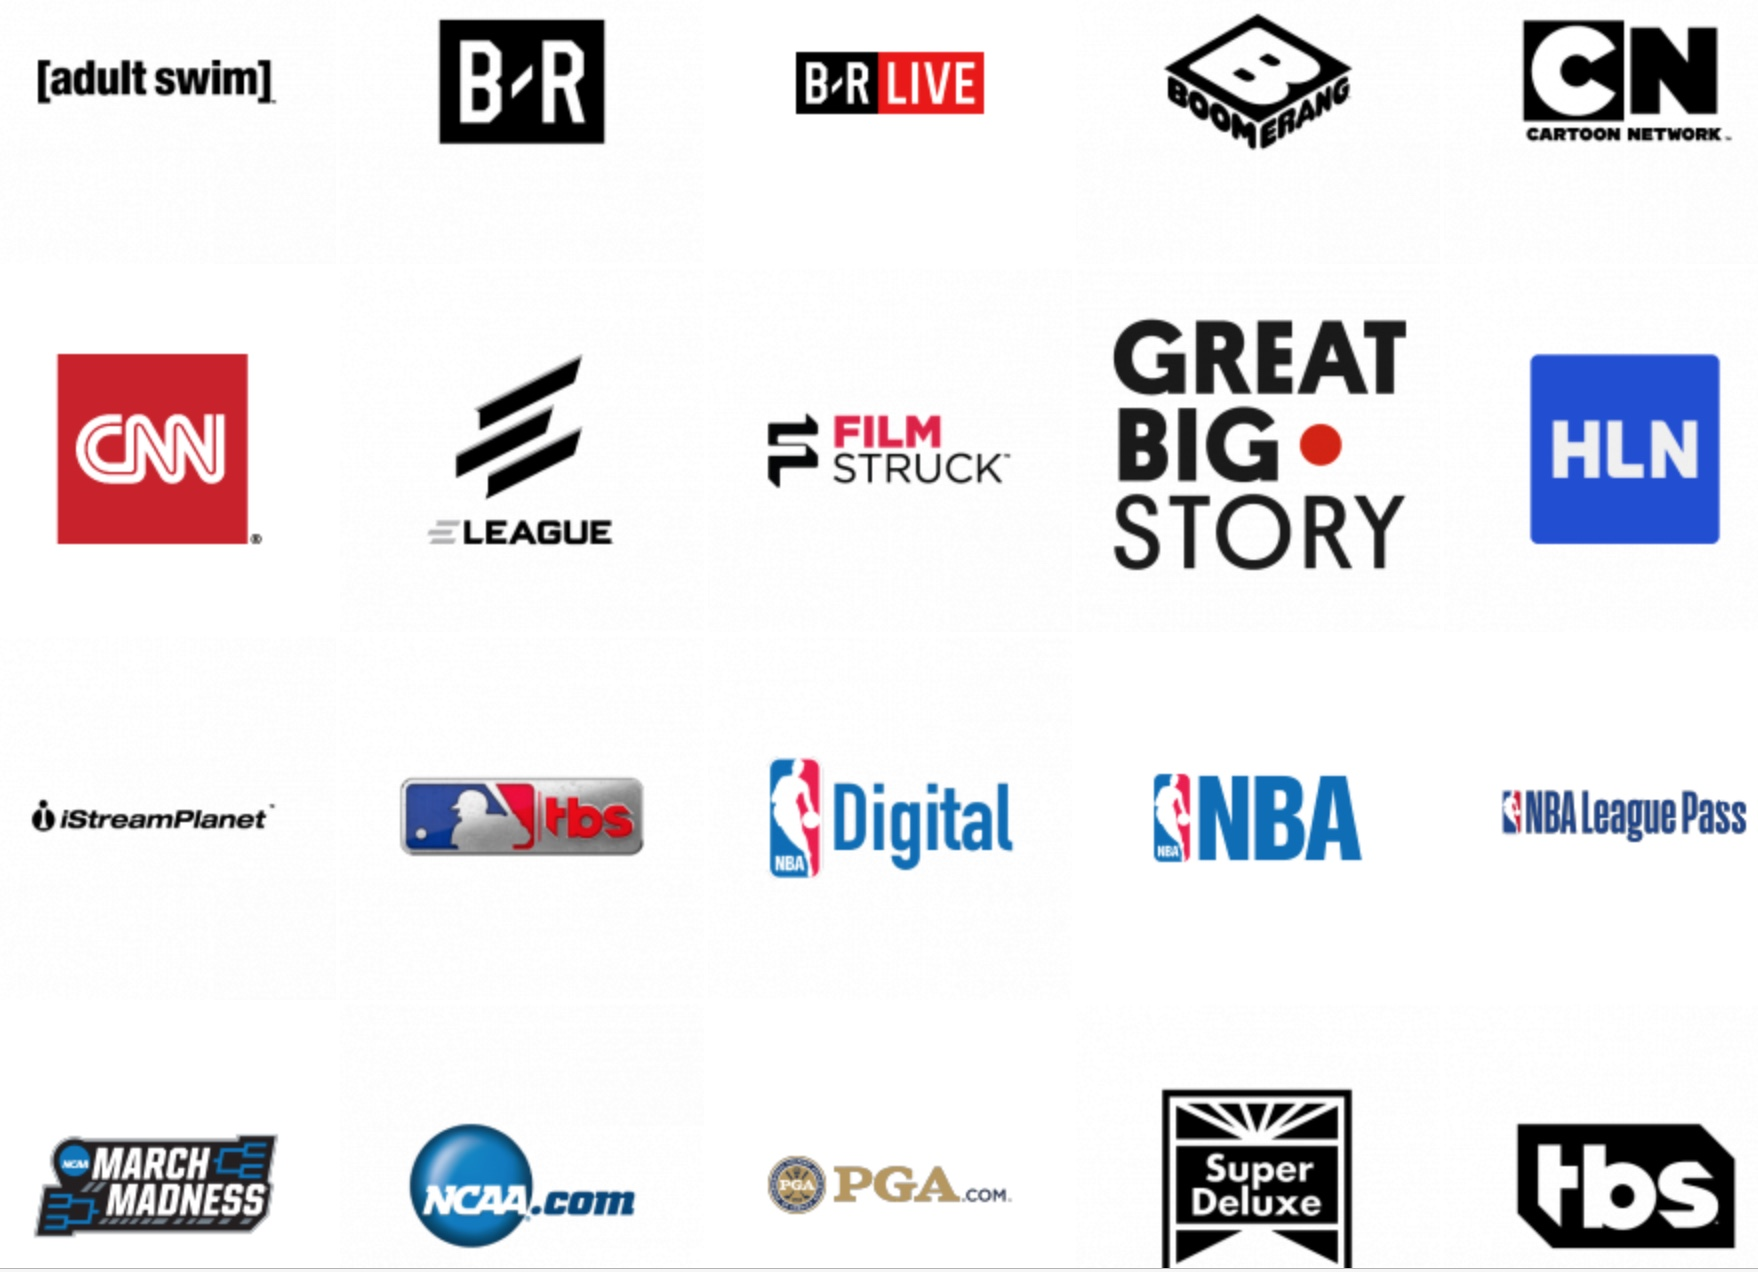 Some of the brands under Turner